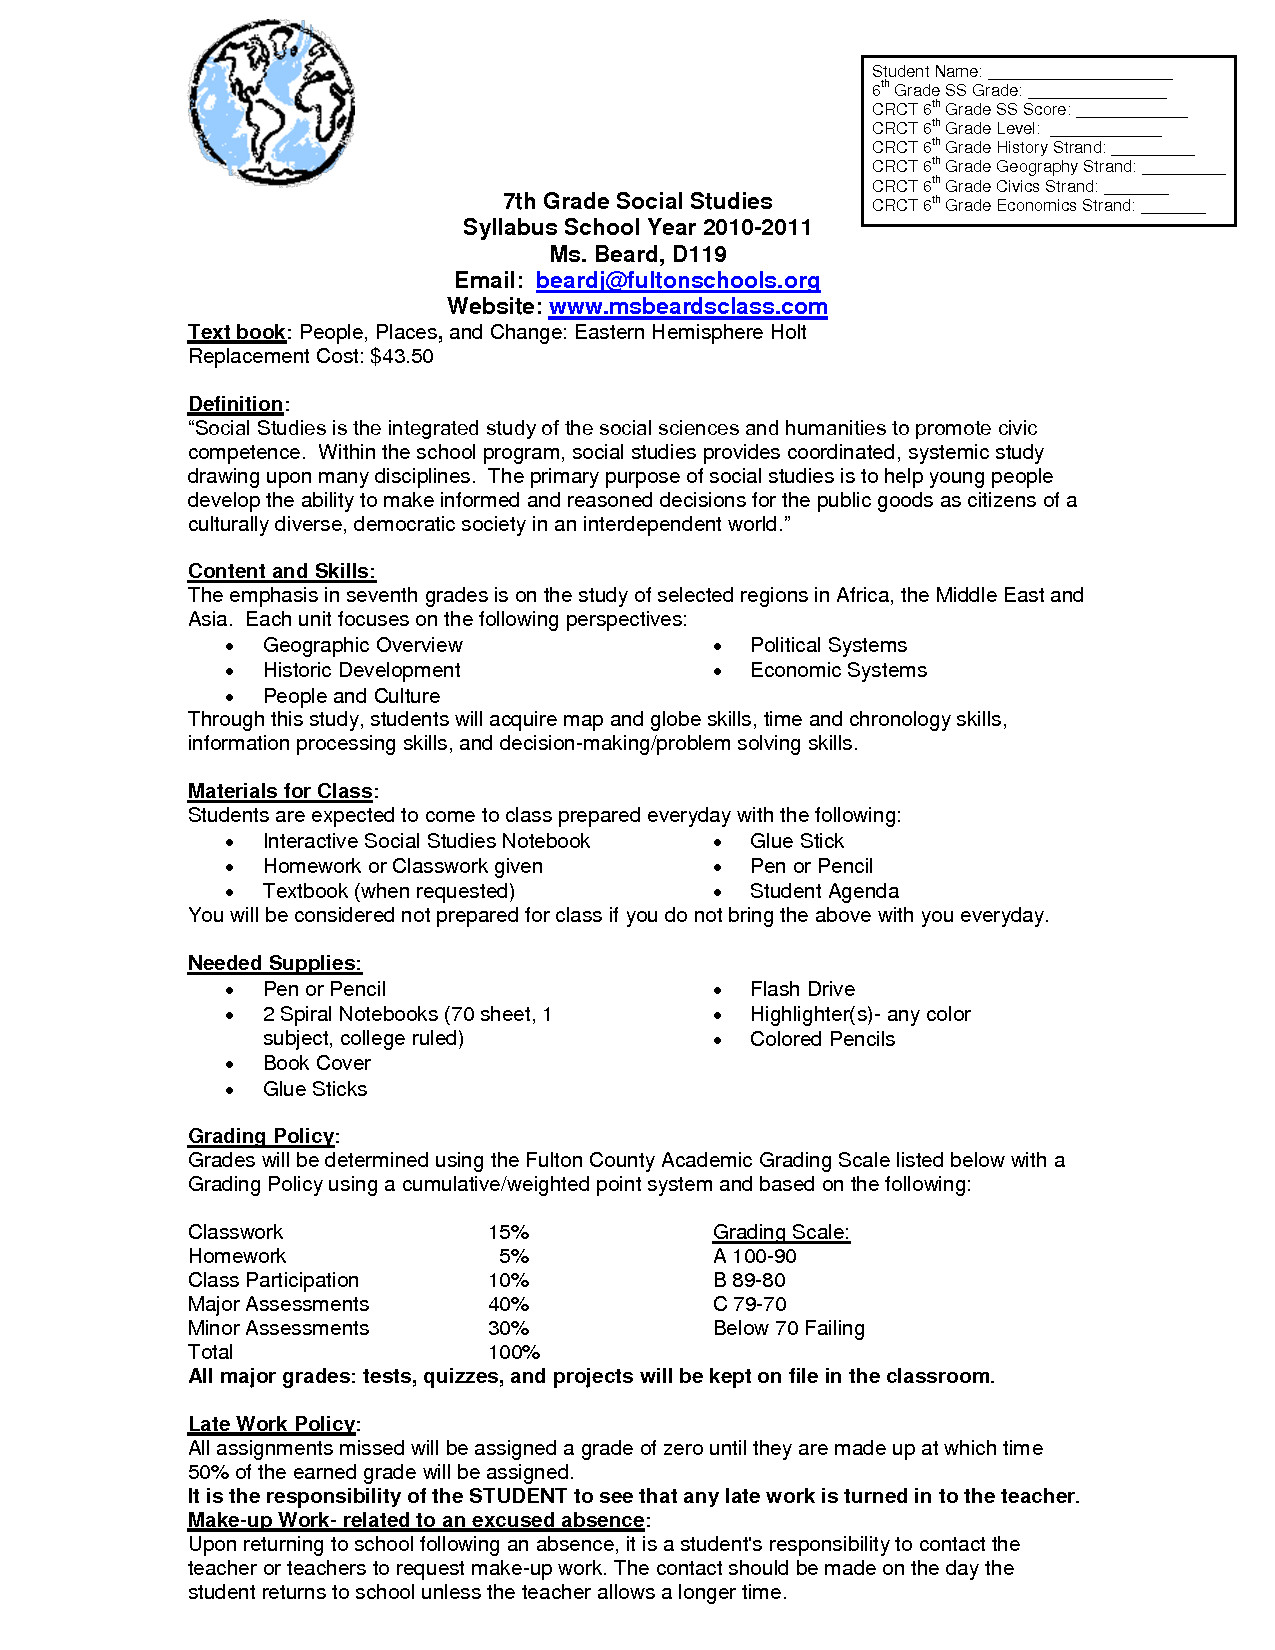 Hemisphere Worksheets 6th Grade Best social Stu S for 7th Graders Worksheet